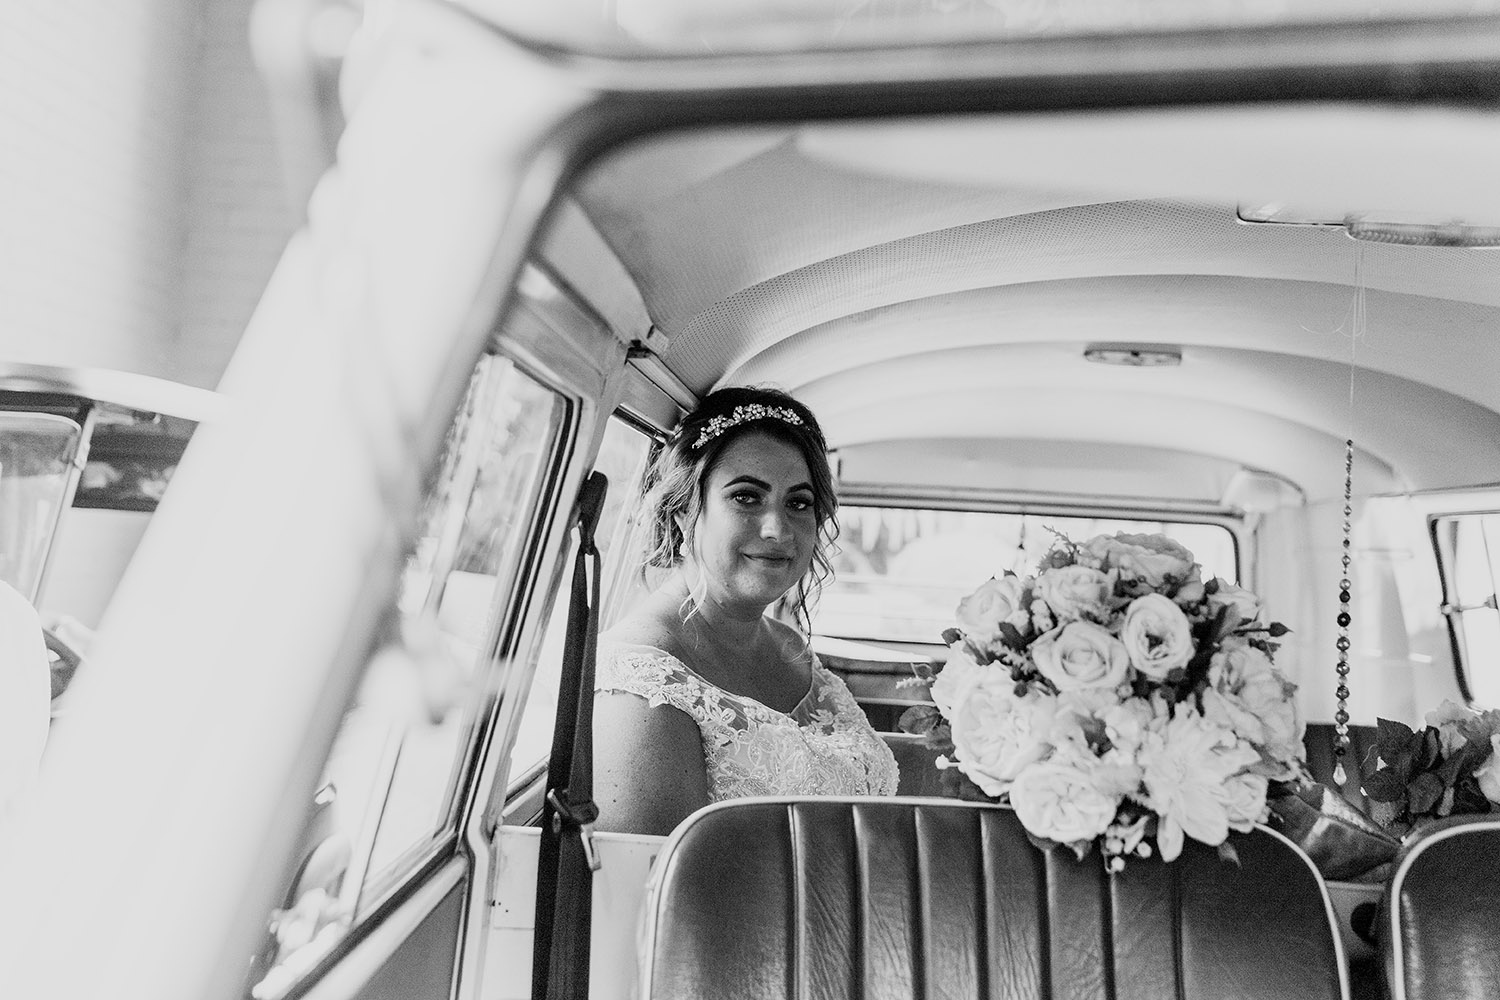 B&W image- Bride sitting in a VDub smiling holding flowers - Bellingen wedding photographer - Coffs coast wedding photographer - Nambucca Valley wedding photographer - Alice Payne photography